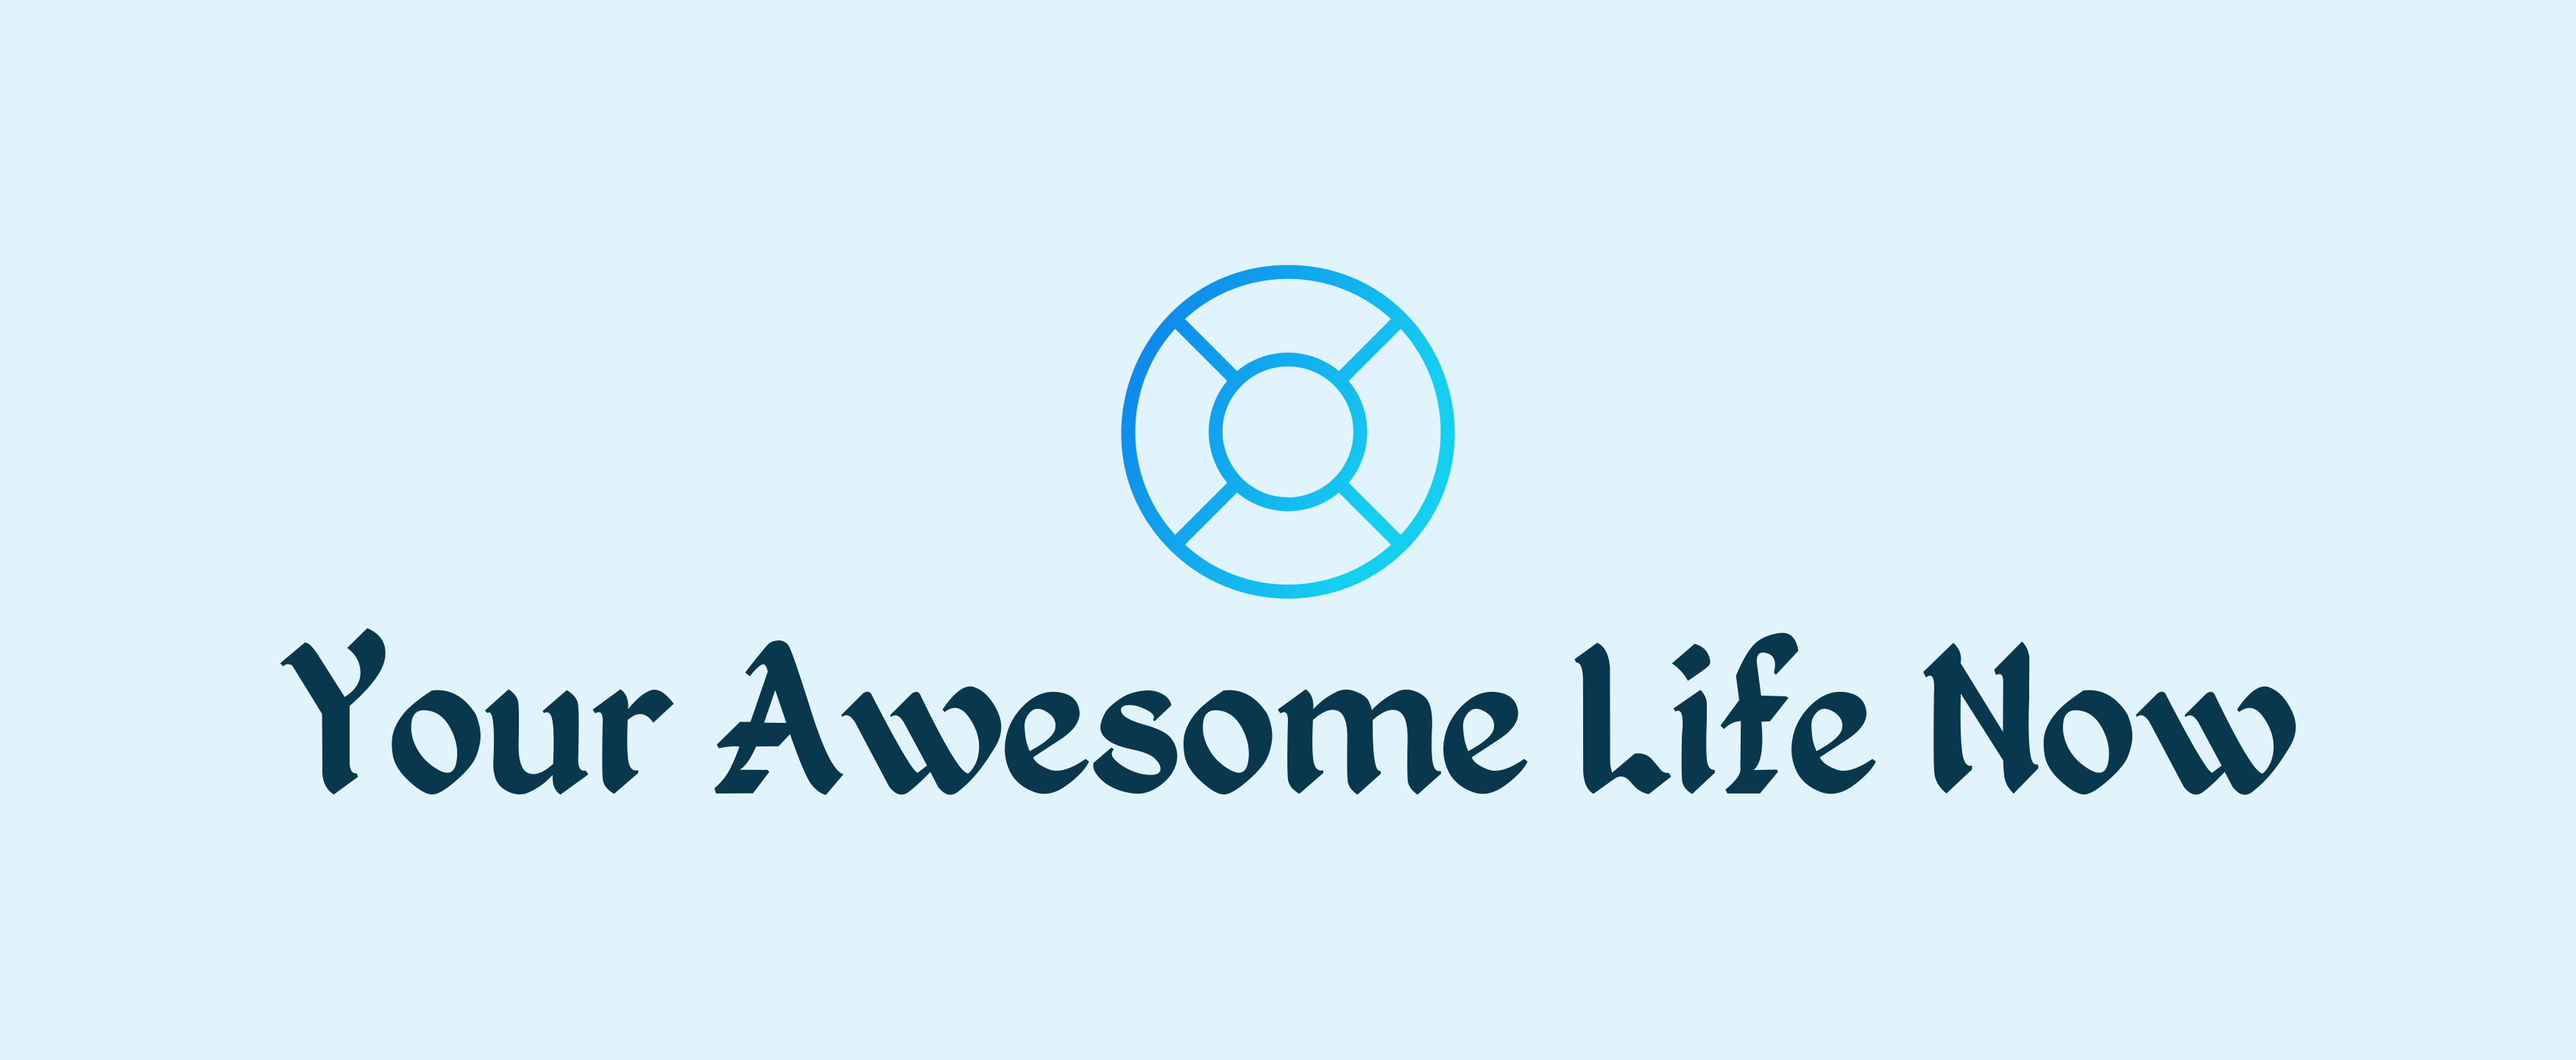 you awesome life now